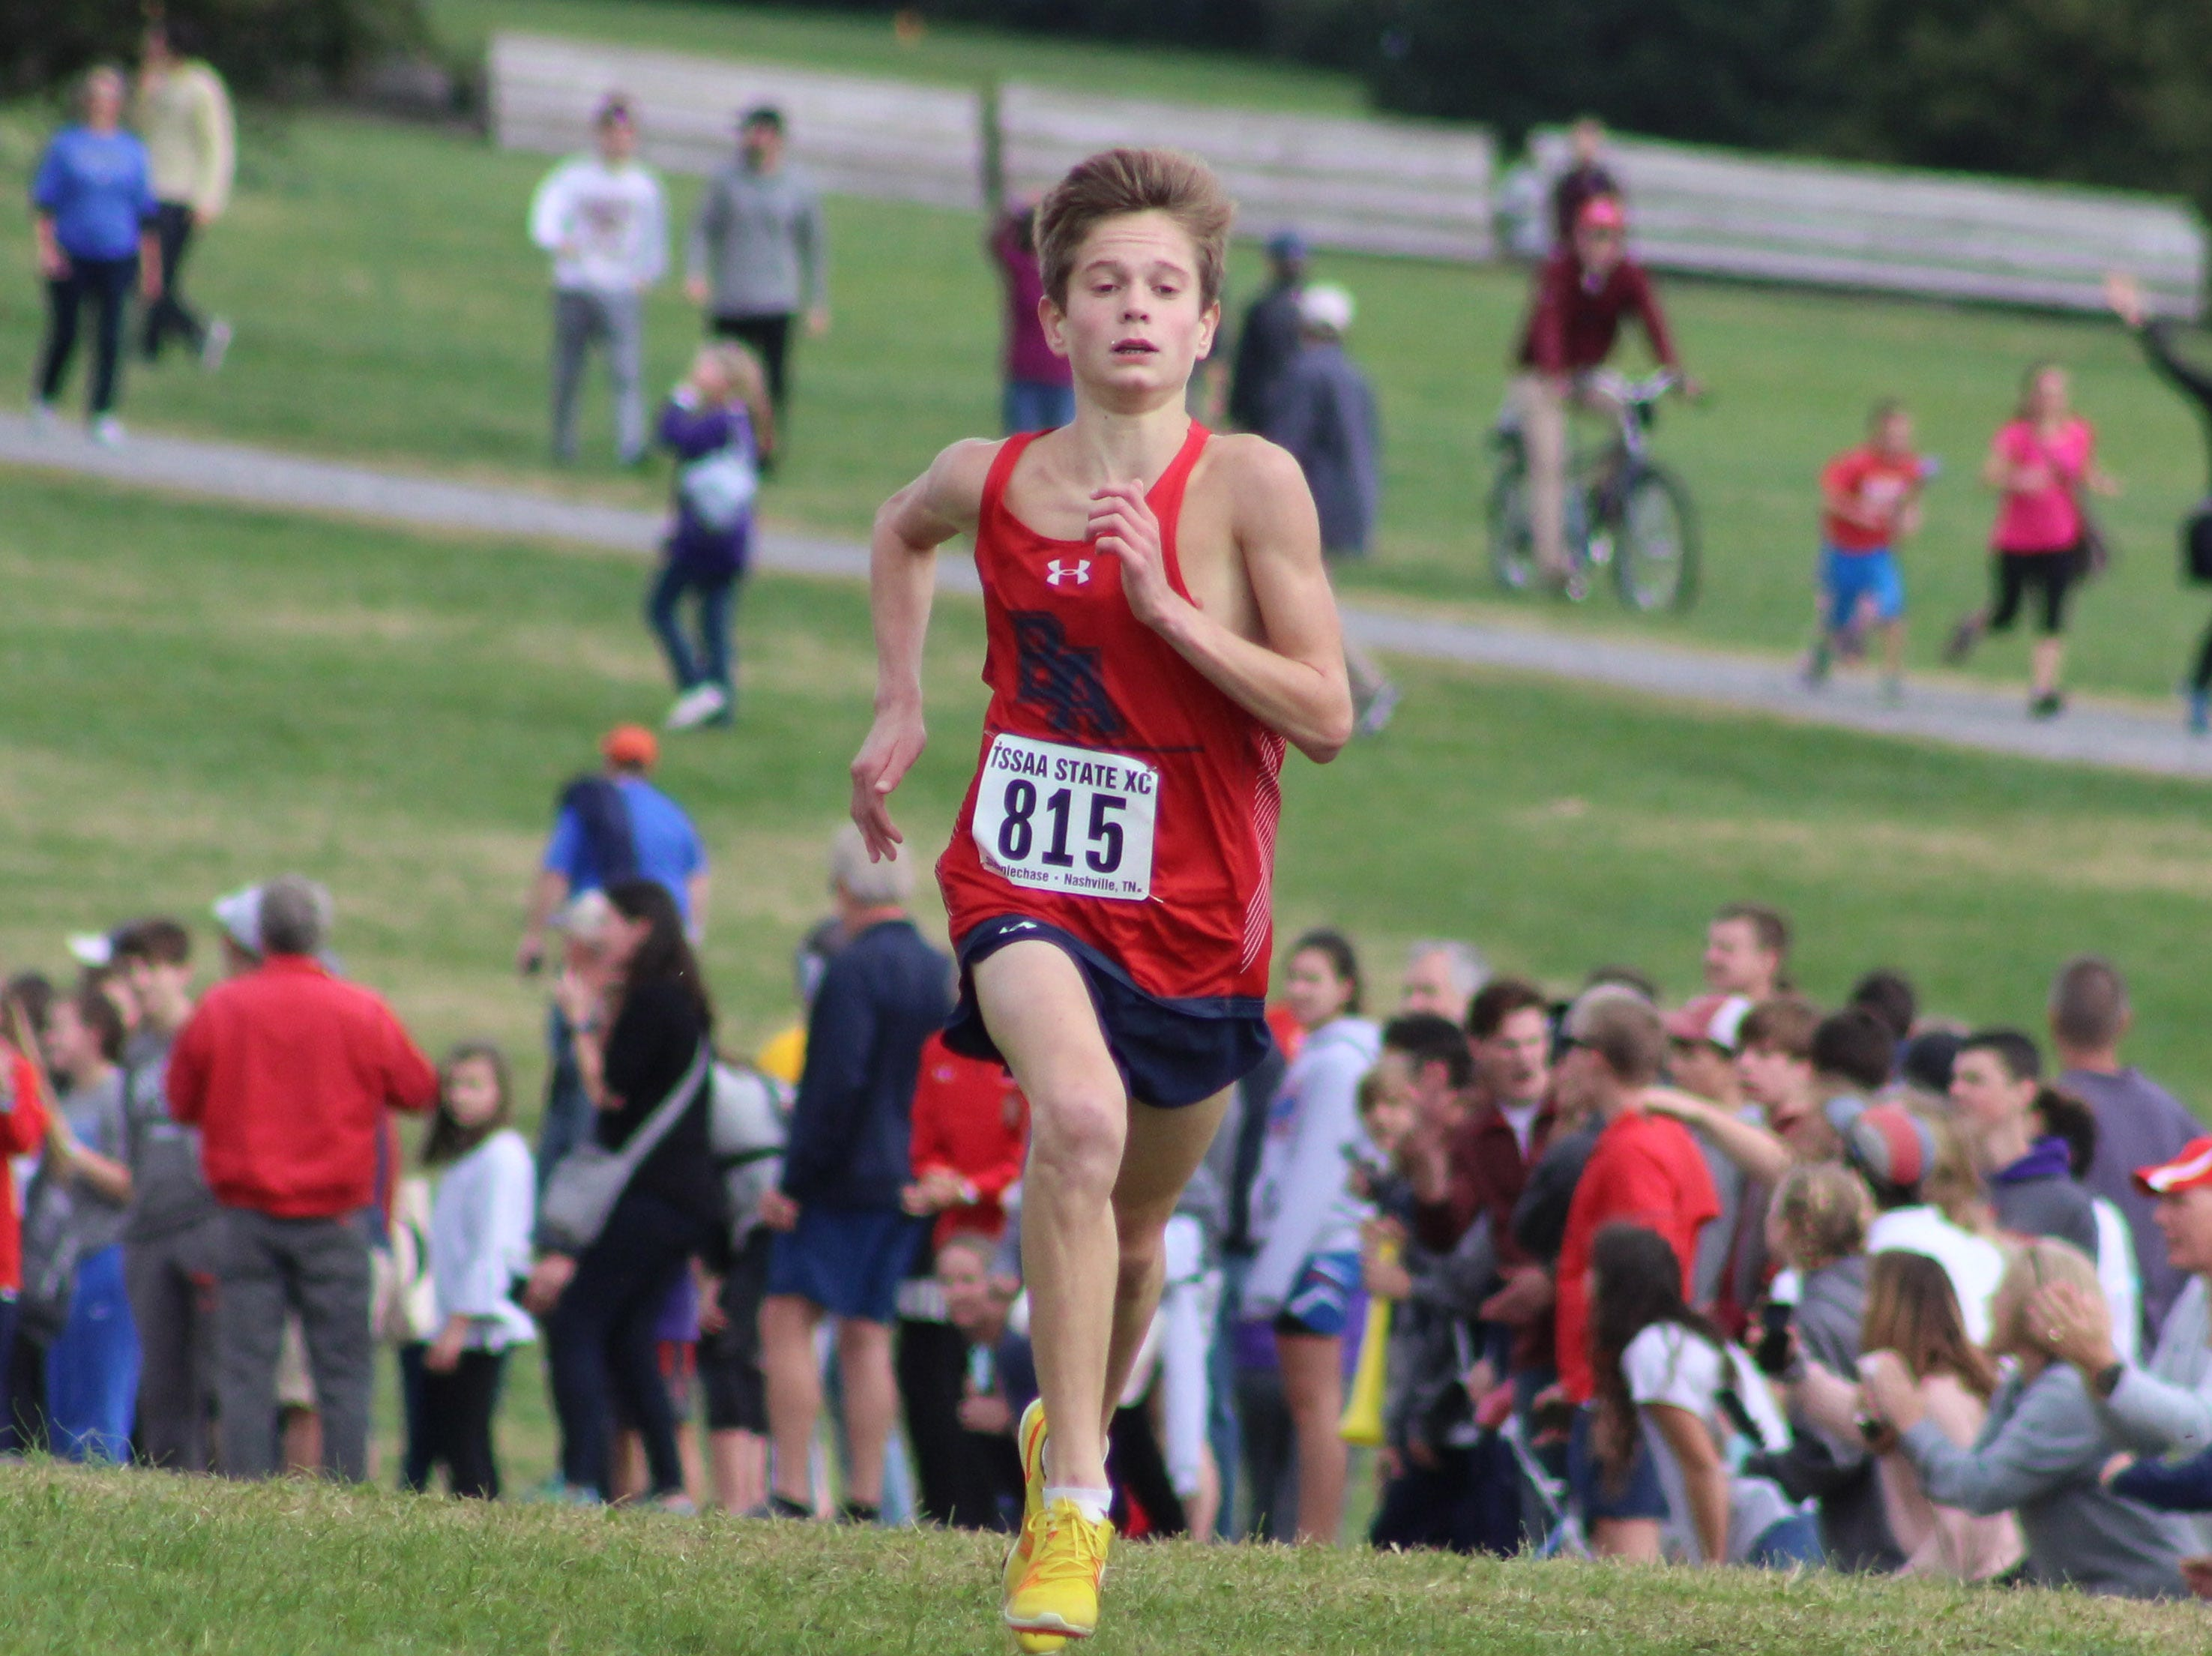 Brentwood Academy's Cayden Durrough finished fourth in the TSSAA Division II-AA boys cross country state championship on Saturday at Percy Warner Park.